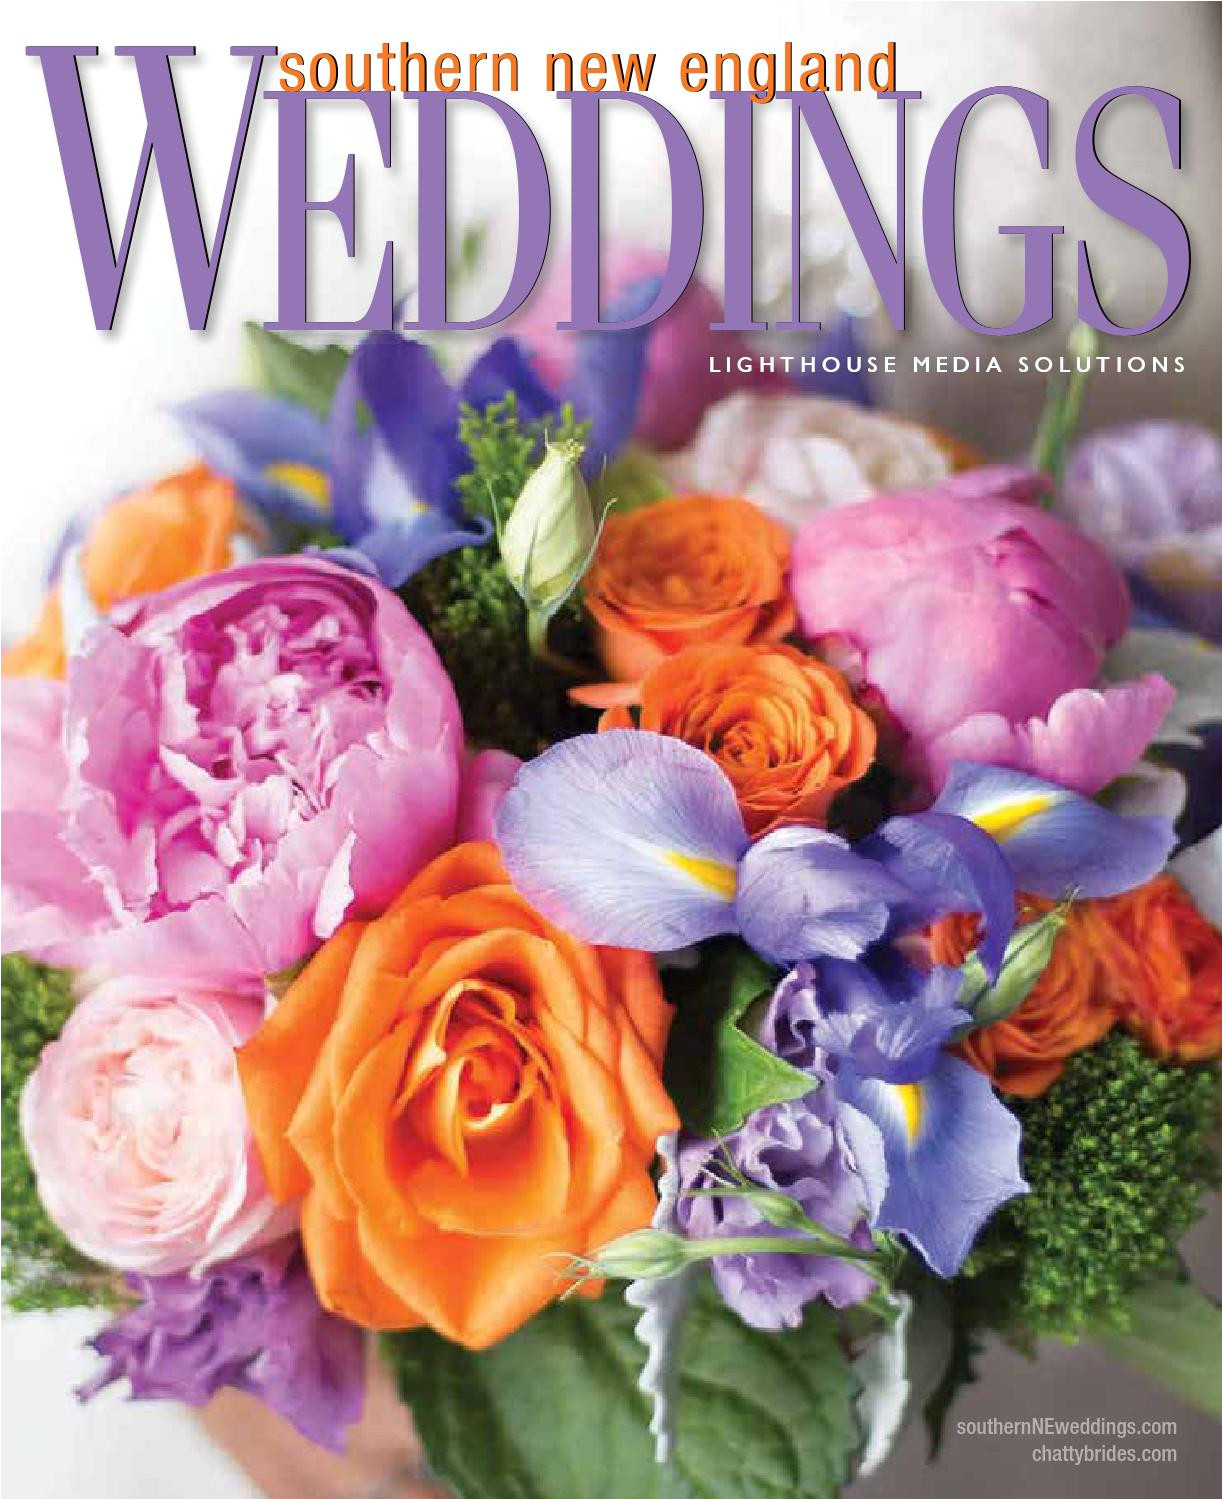 southern new england weddings 2014 by formerly lighthouse media solutions issuu